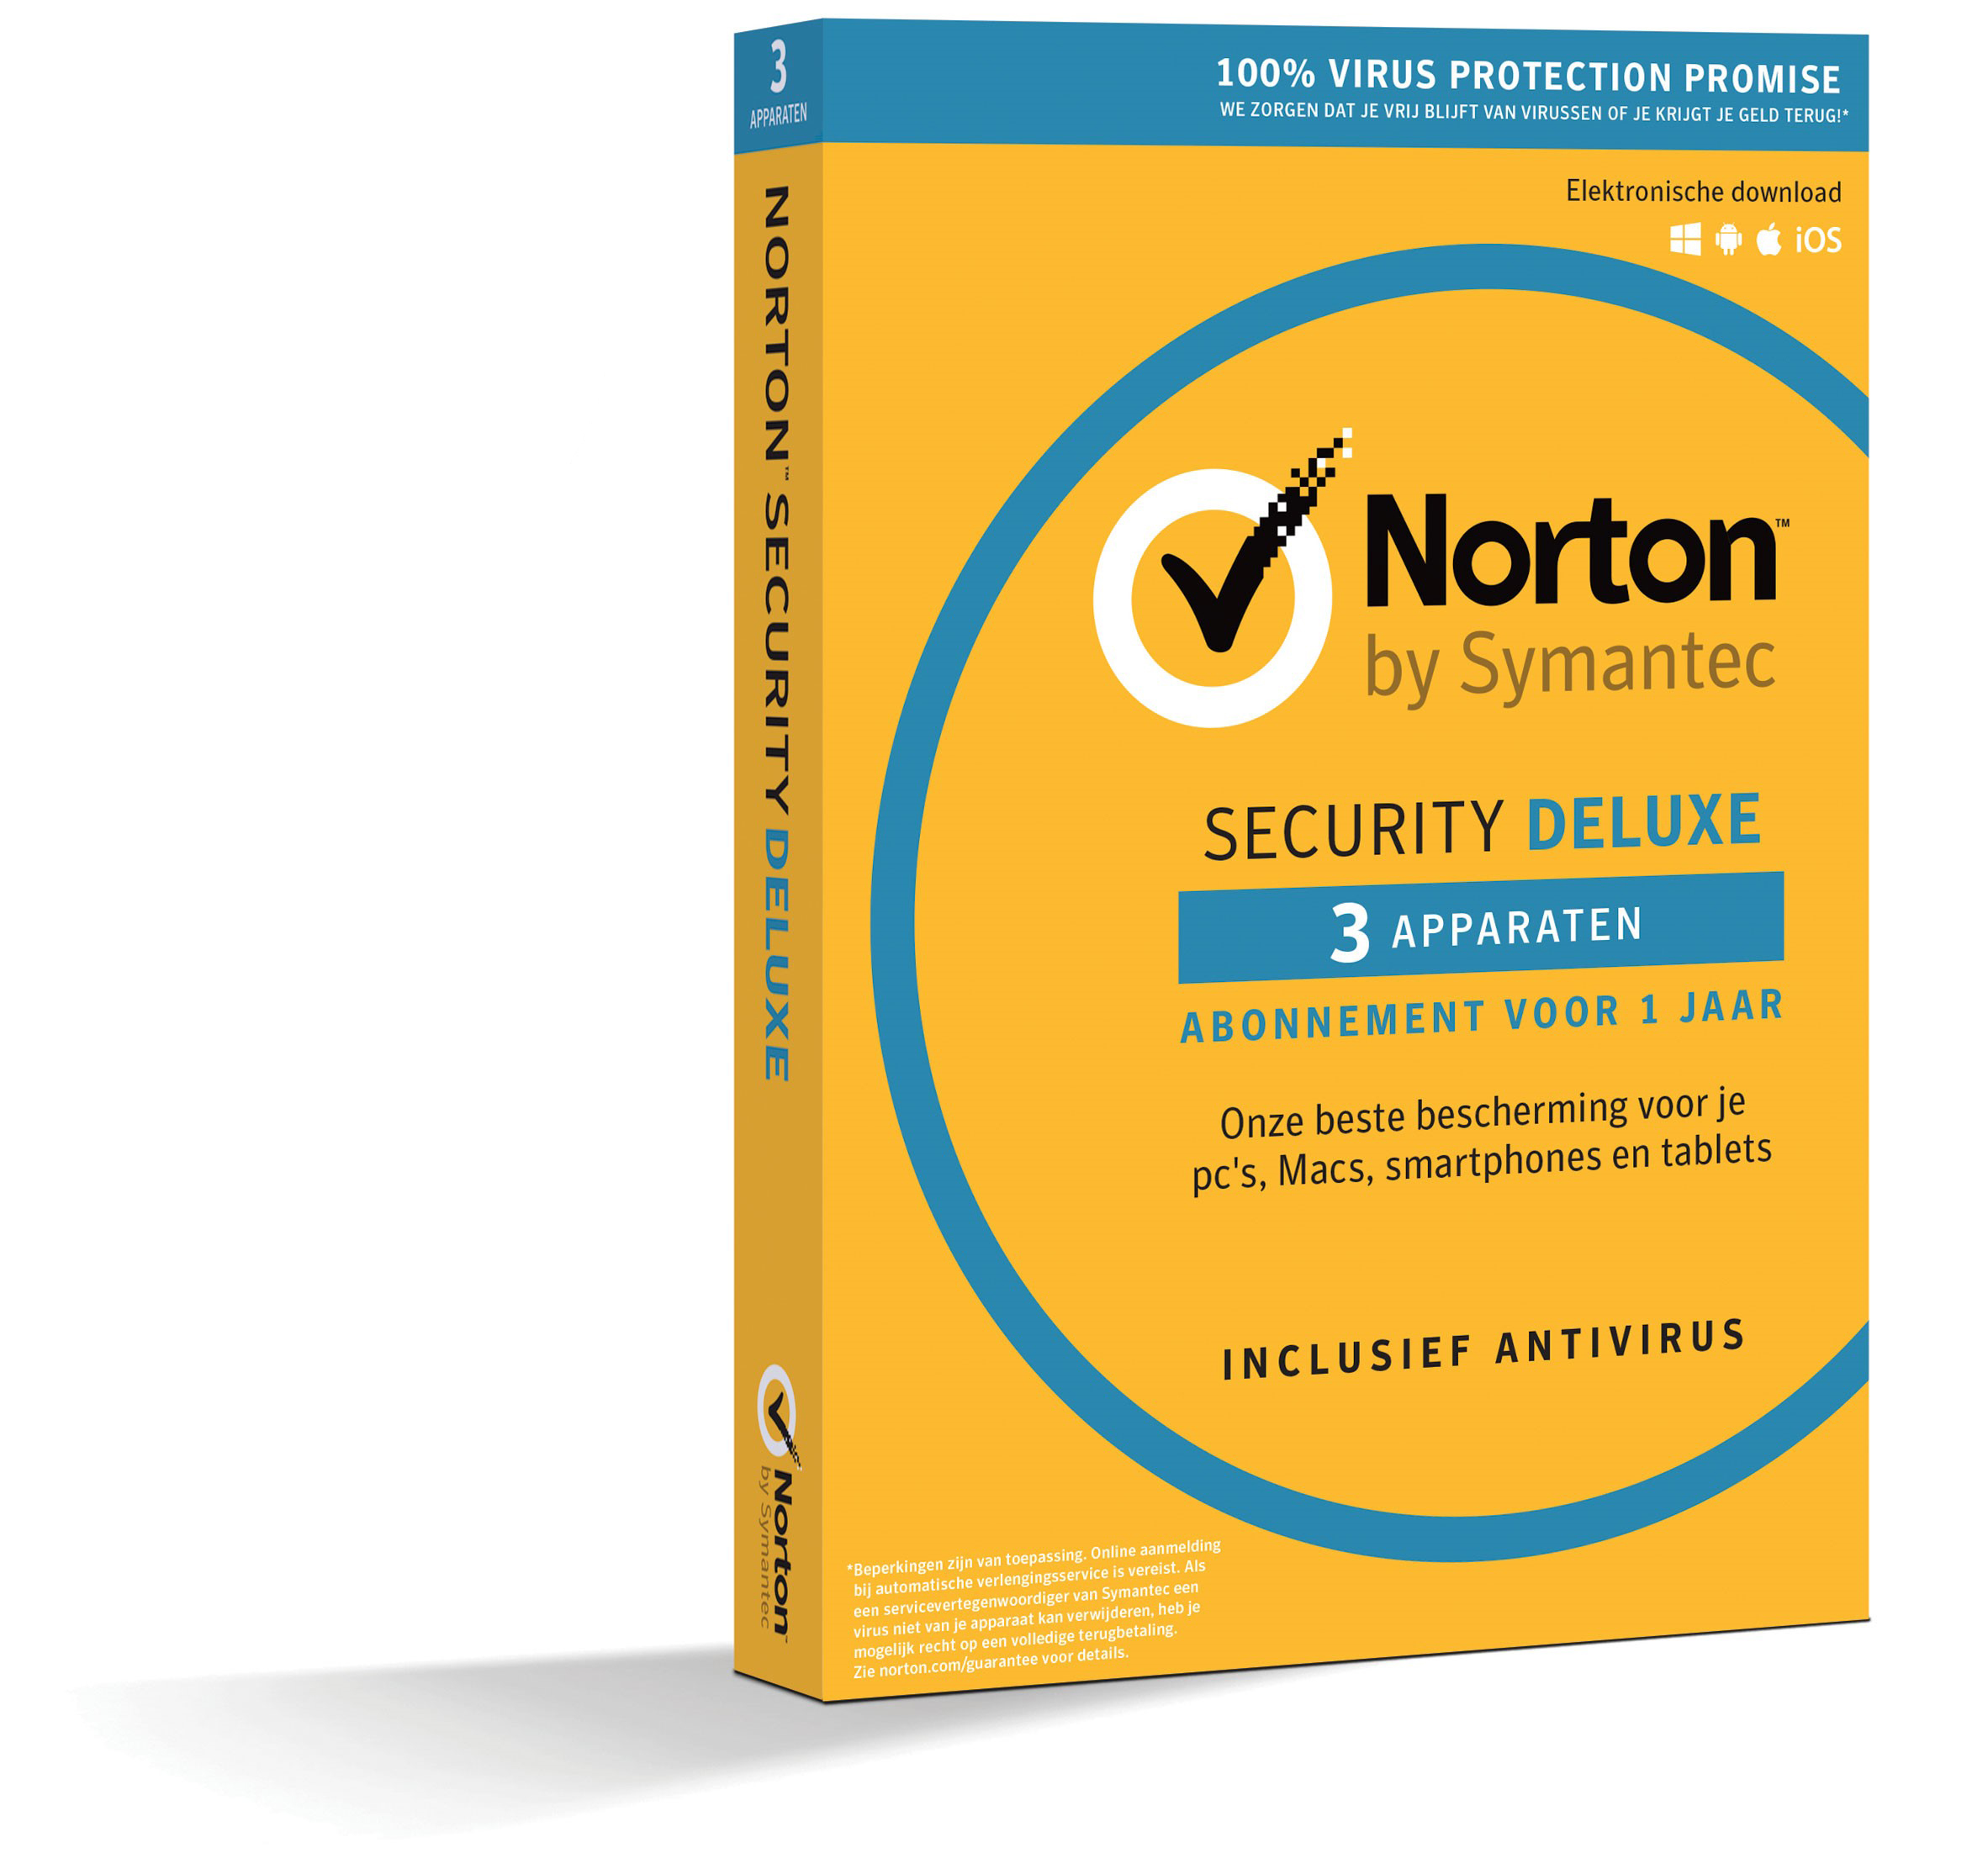 Norton Security Deluxe 3-Devices 1year 2019 Antivirus Included- Windows | Mac | Android | iOs